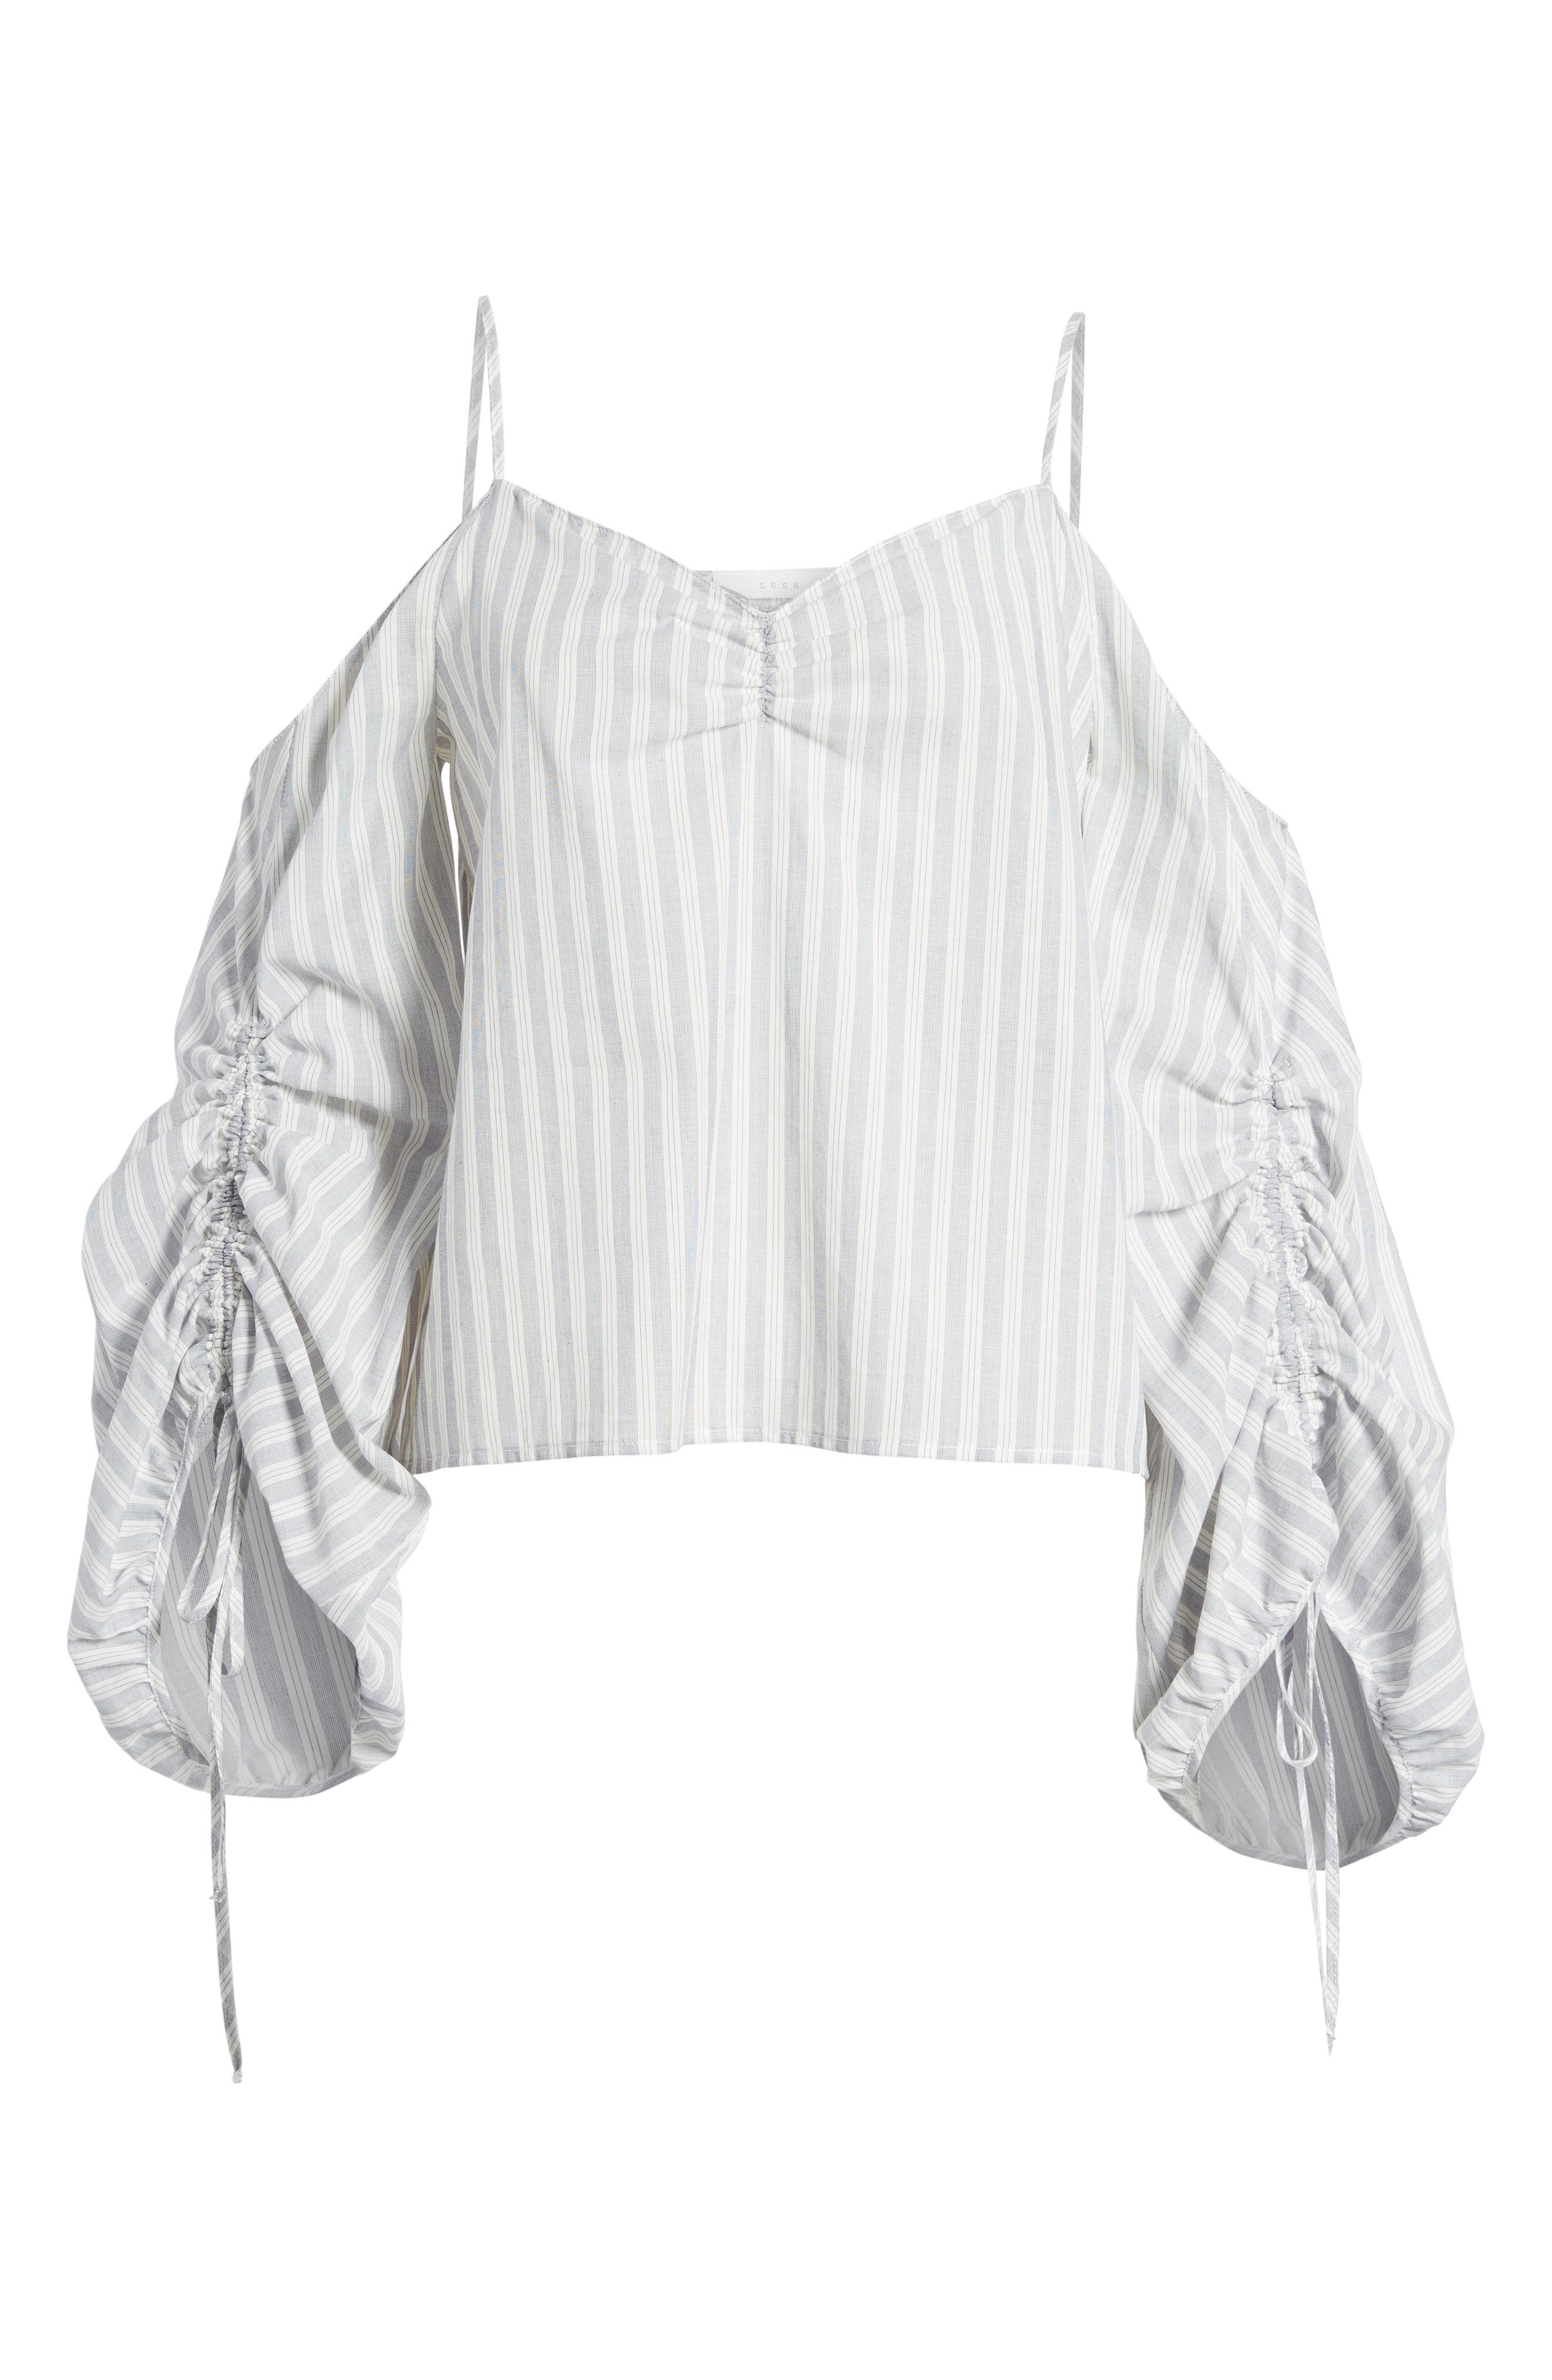 Cinched Balloon Sleeve Top,                             Alternate thumbnail 6, color,                             020